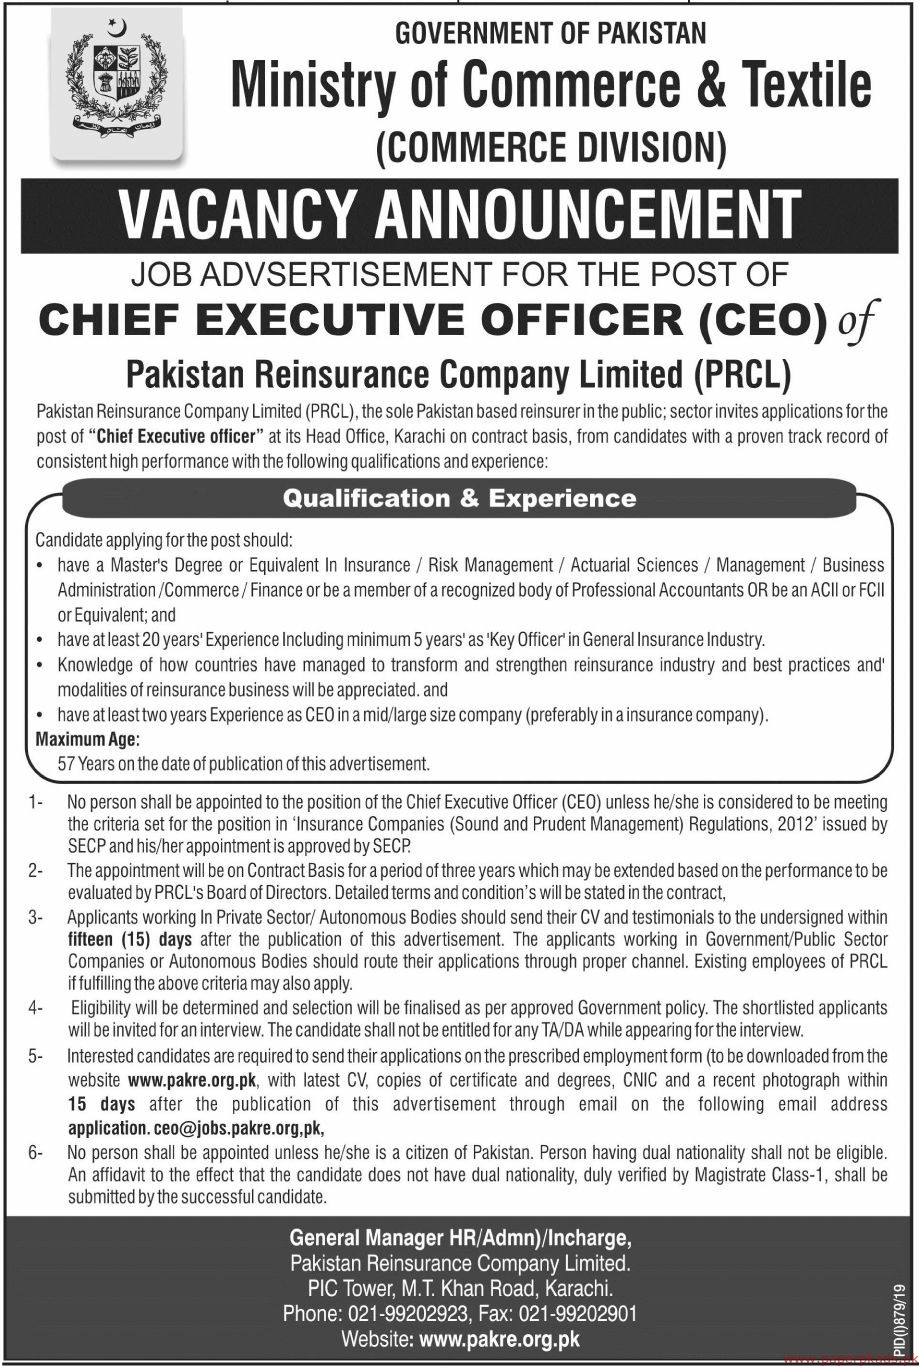 Government of Pakistan Ministry of Commerce & Textile Jobs 2019 Latest